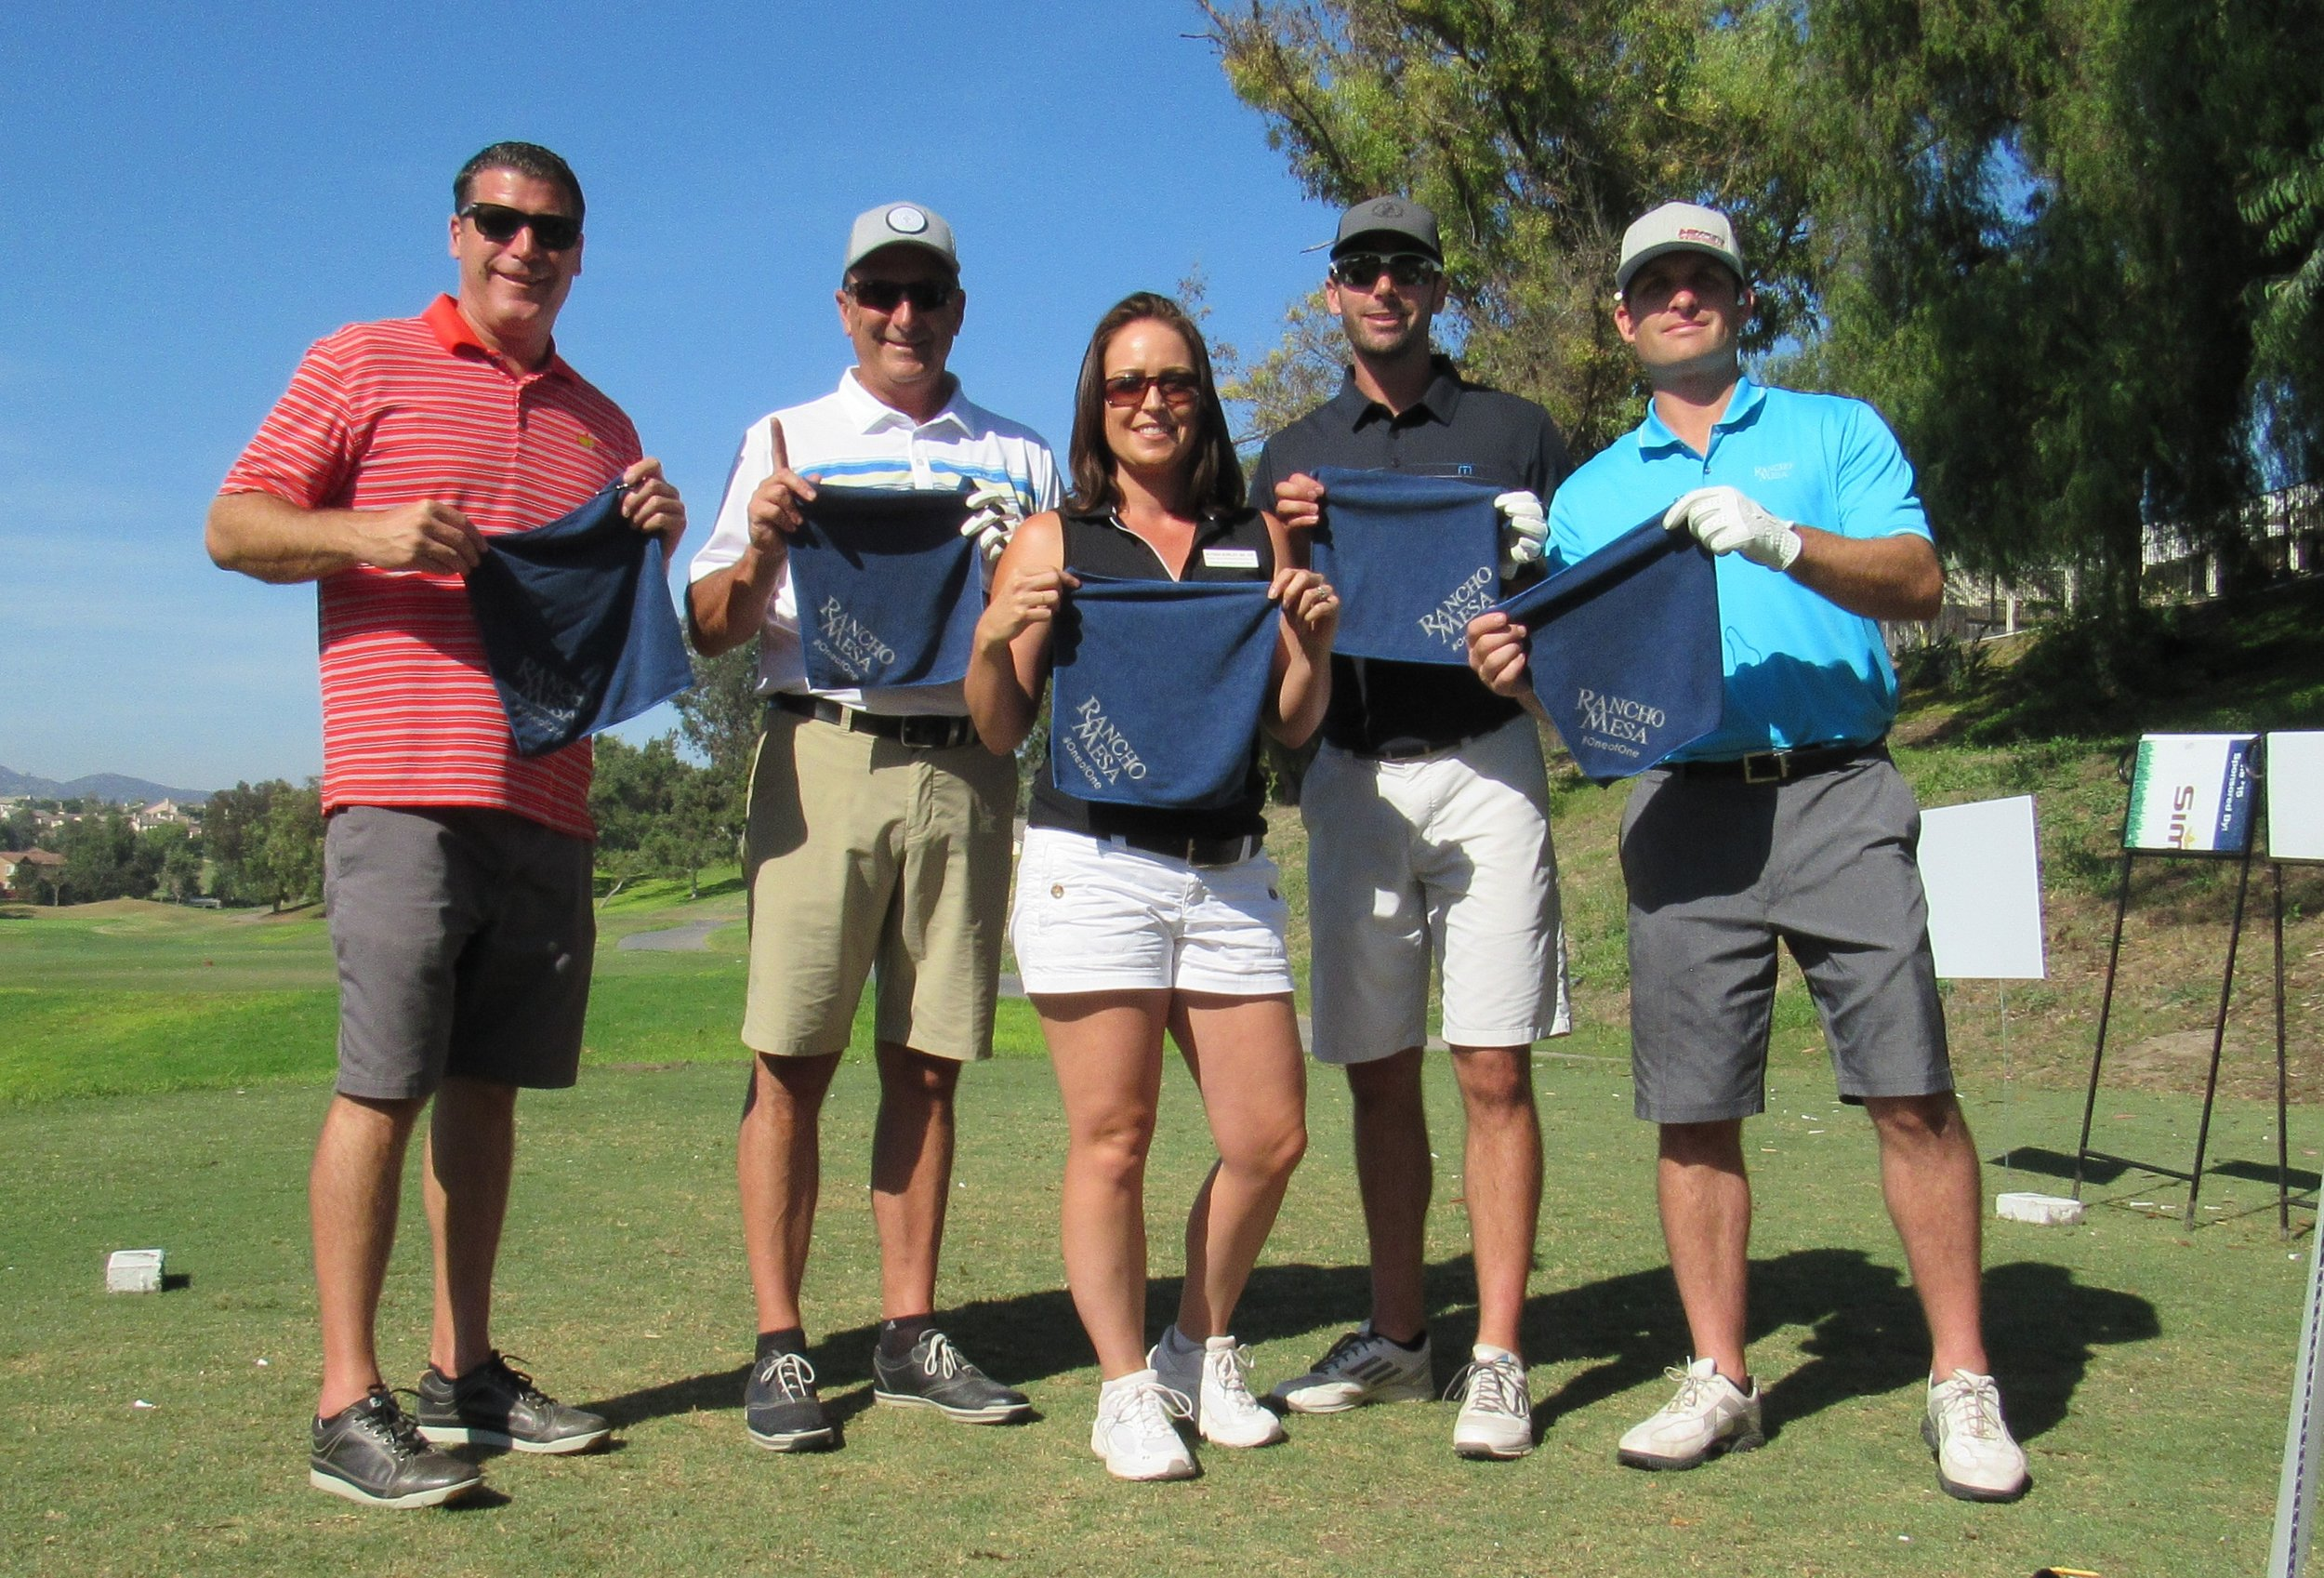 Sam Clayton, Dave Garcia, Alyssa Burley, Drew Garcia, and Kevin Howard holding Rancho Mesa golf towels on the course.